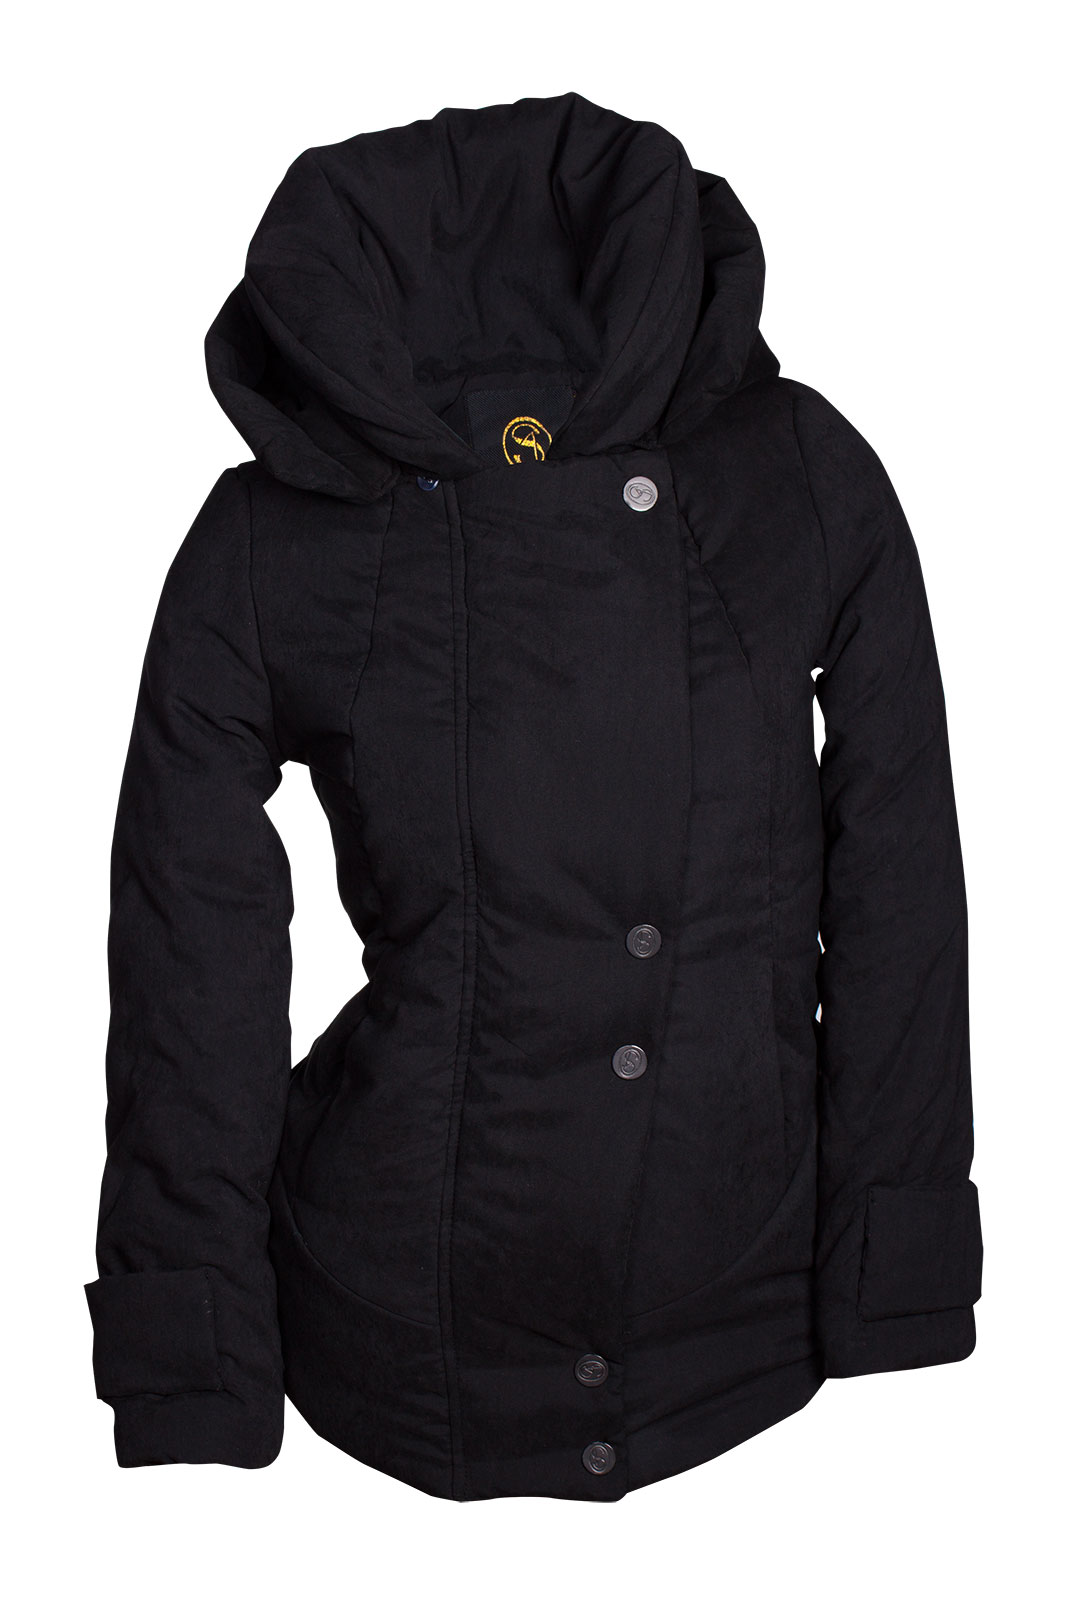 winter damen jacke parka kapuze mantel daunen winterjacke outdoor warm s m l xl ebay. Black Bedroom Furniture Sets. Home Design Ideas